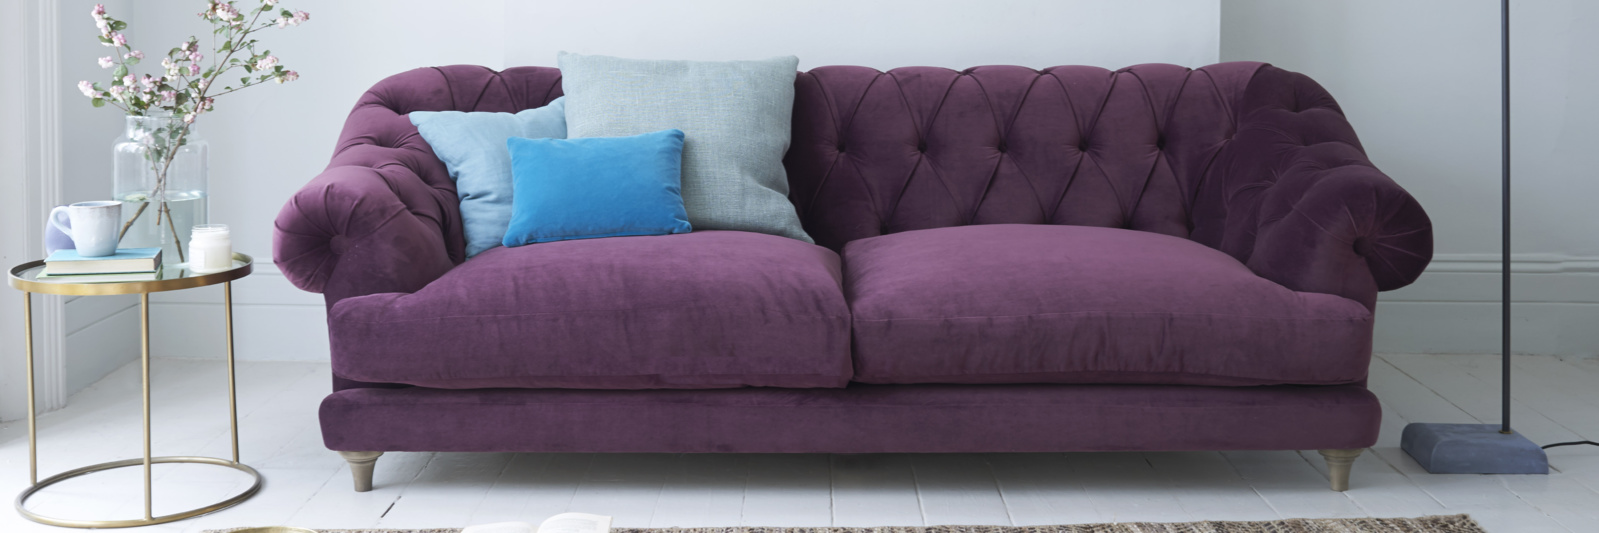 Bagsie deep-buttoned chesterfield sofa in purple fabric